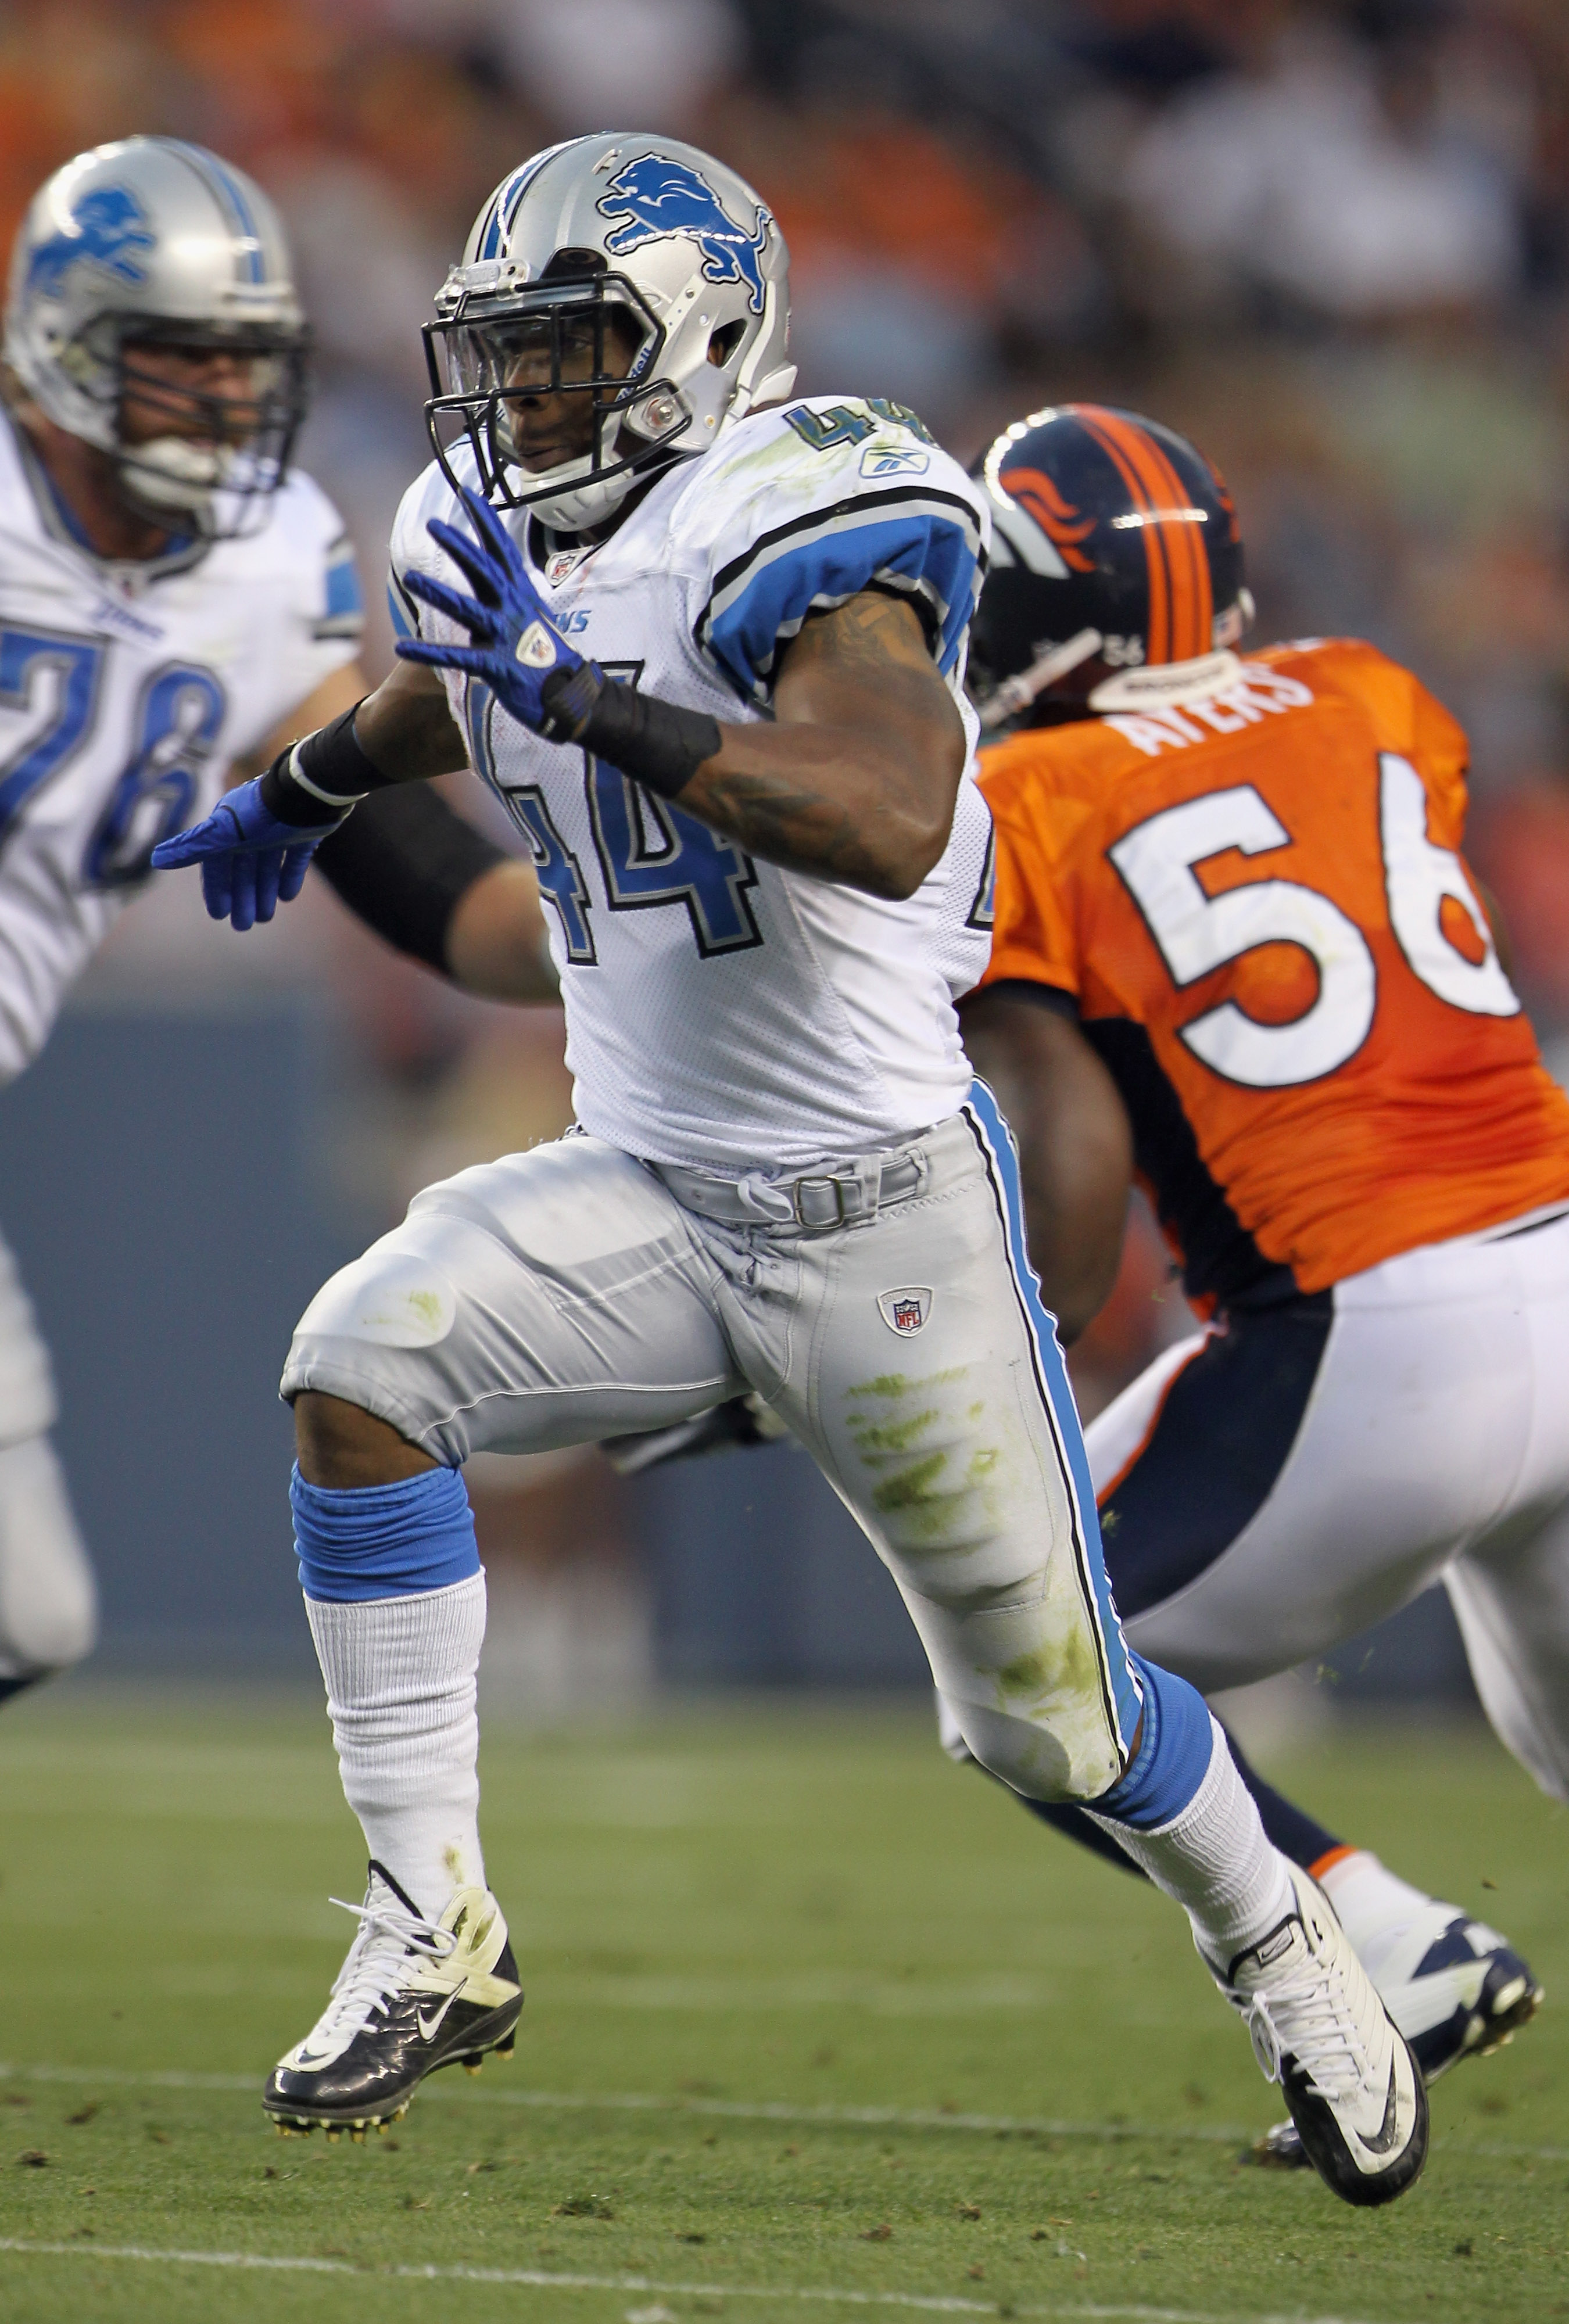 DENVER - AUGUST 21:  Jahvid Best #44 of the Detroit Lions runs a pass route against the Denver Broncos during preseason NFL action at INVESCO Field at Mile High on August 21, 2010 in Denver, Colorado. The Lions defeated the Broncos 25-20.  (Photo by Doug